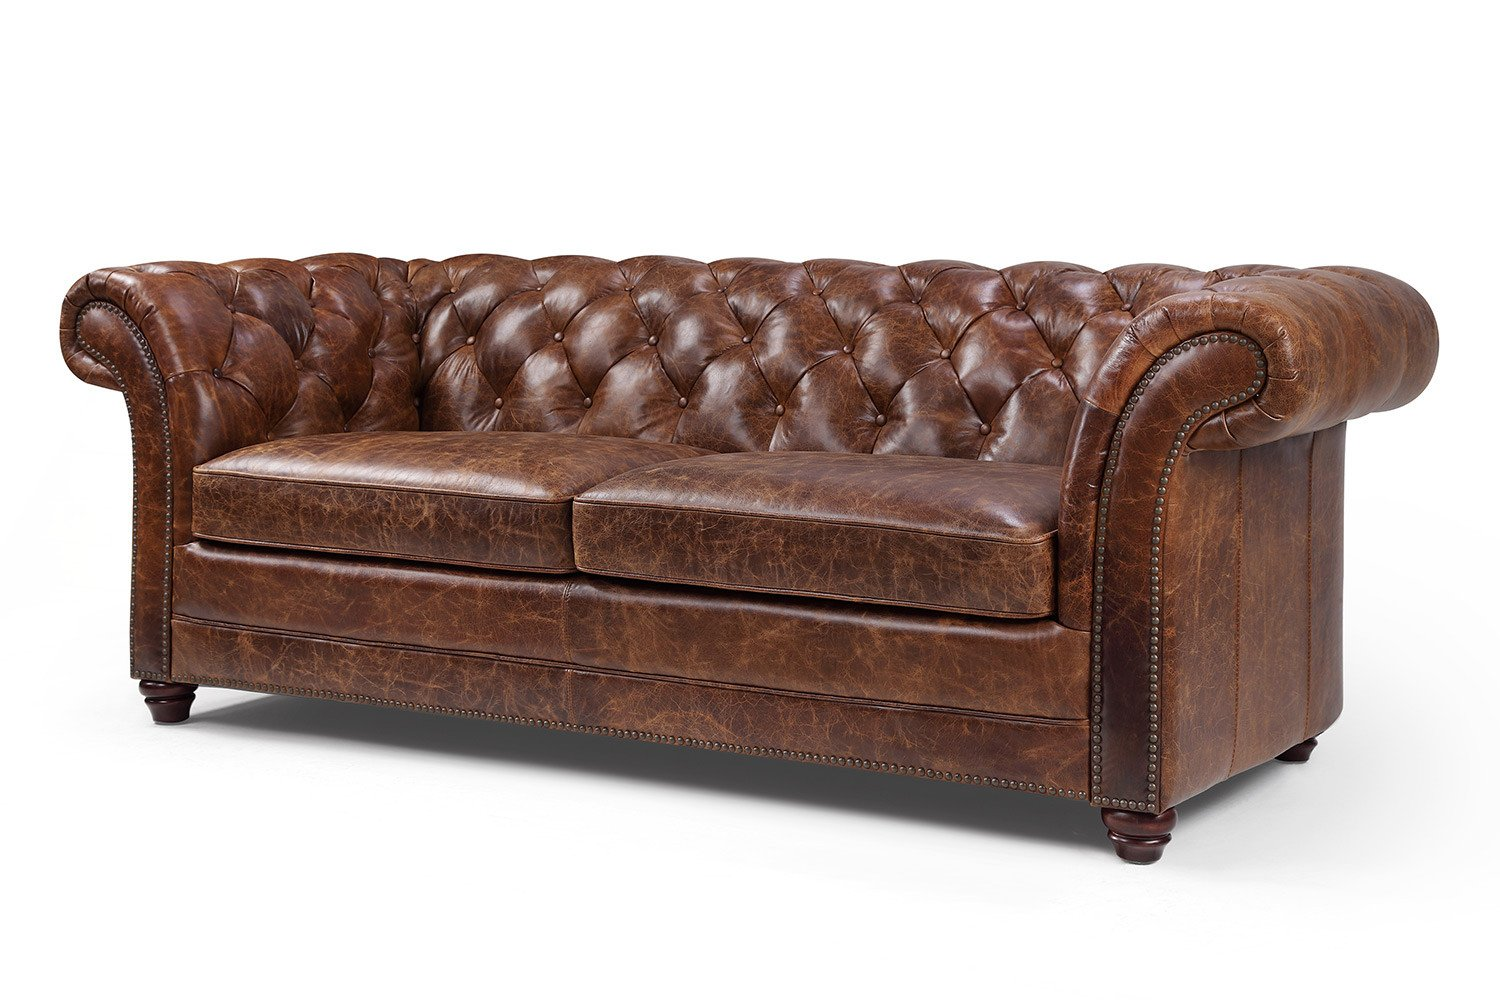 Amazon Com Westminster Chesterfield Leather Sofa By Rose Moore  ~ Brown Leather Sofa Chair